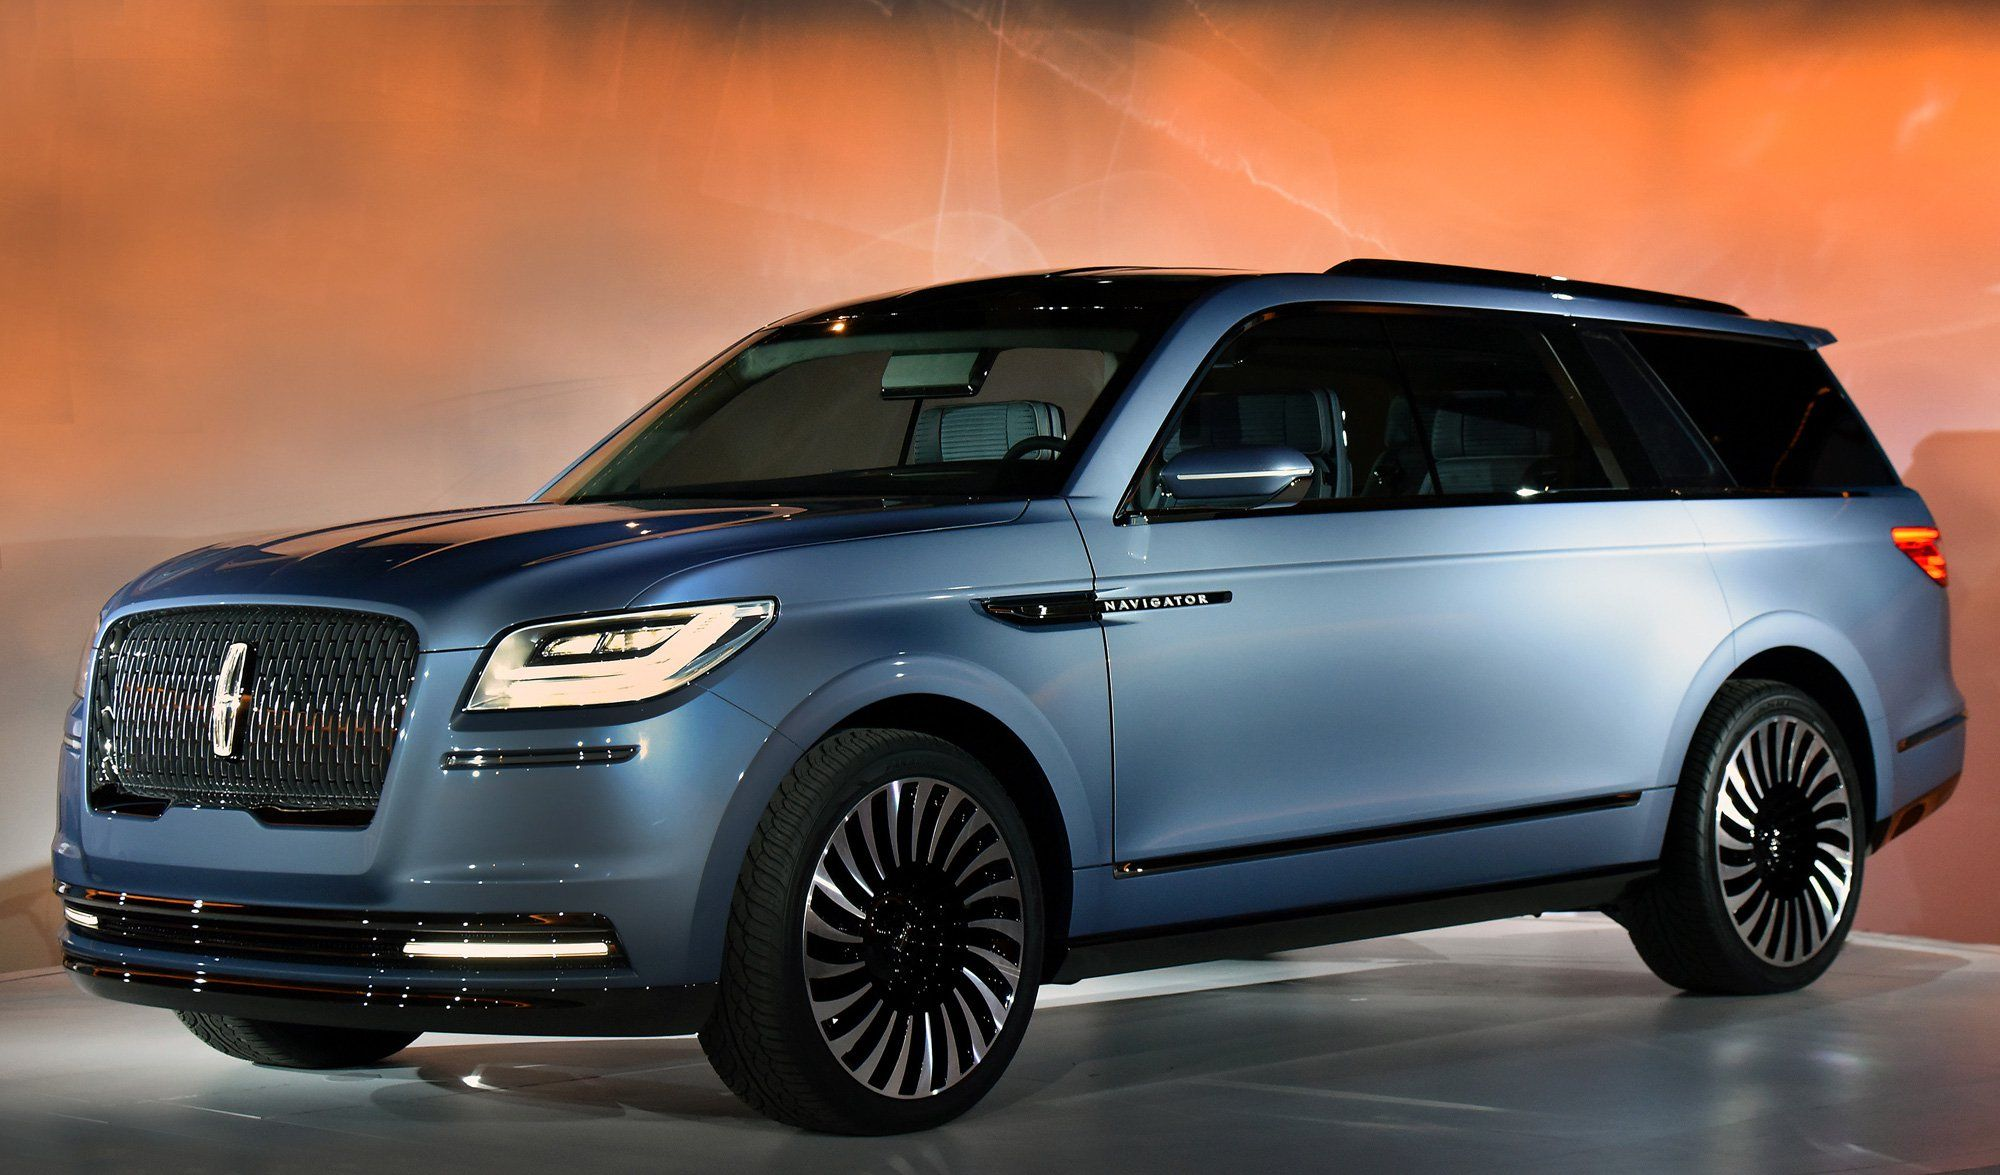 2018 Lincoln Navigator Concept Is An Outrageous Suv With Sports Car